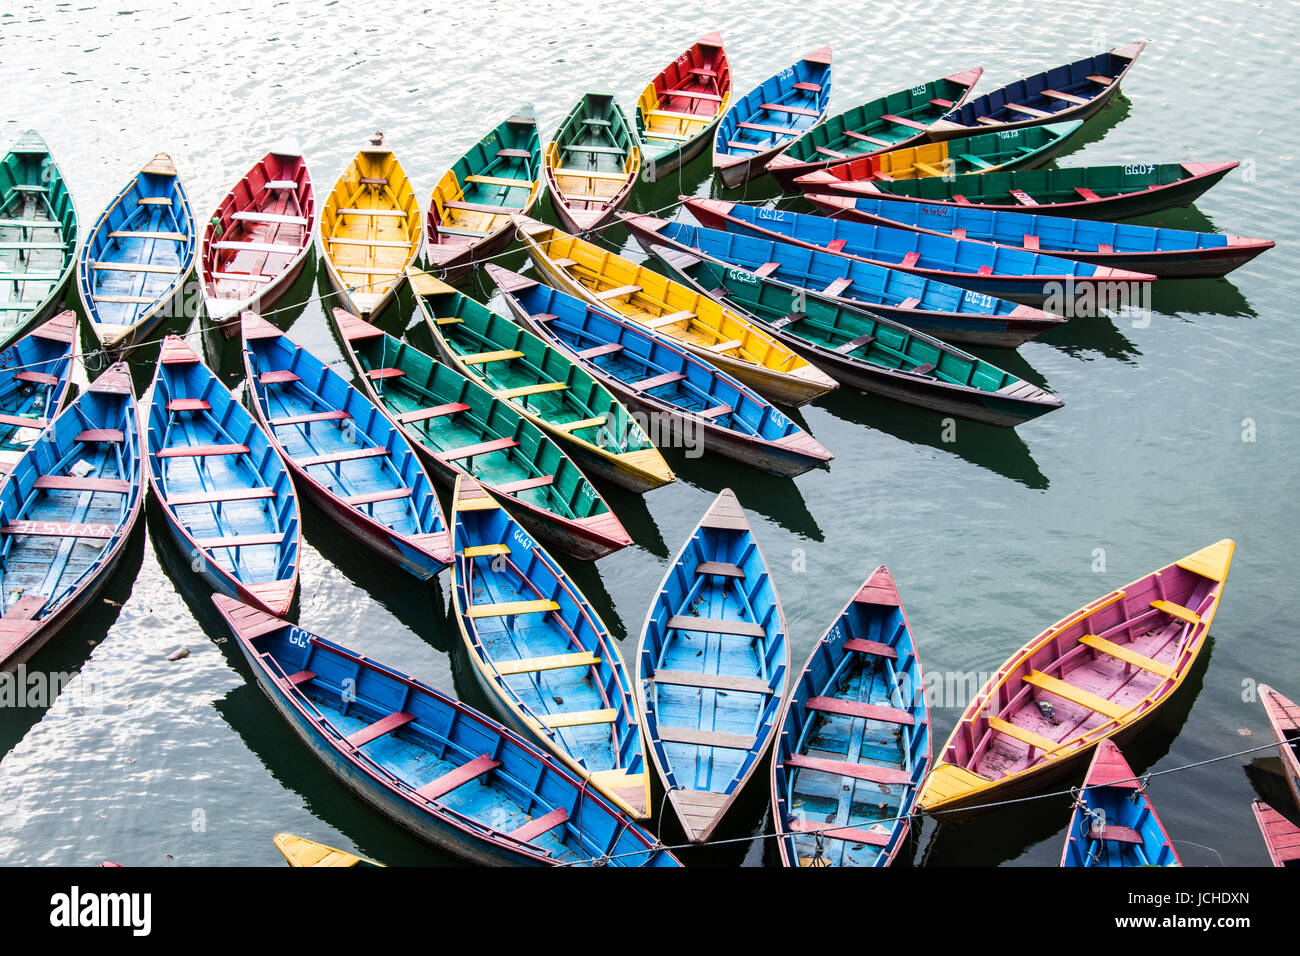 Colorful rowboats, Phewa Lake, Pokhara, Nepal - Stock Image